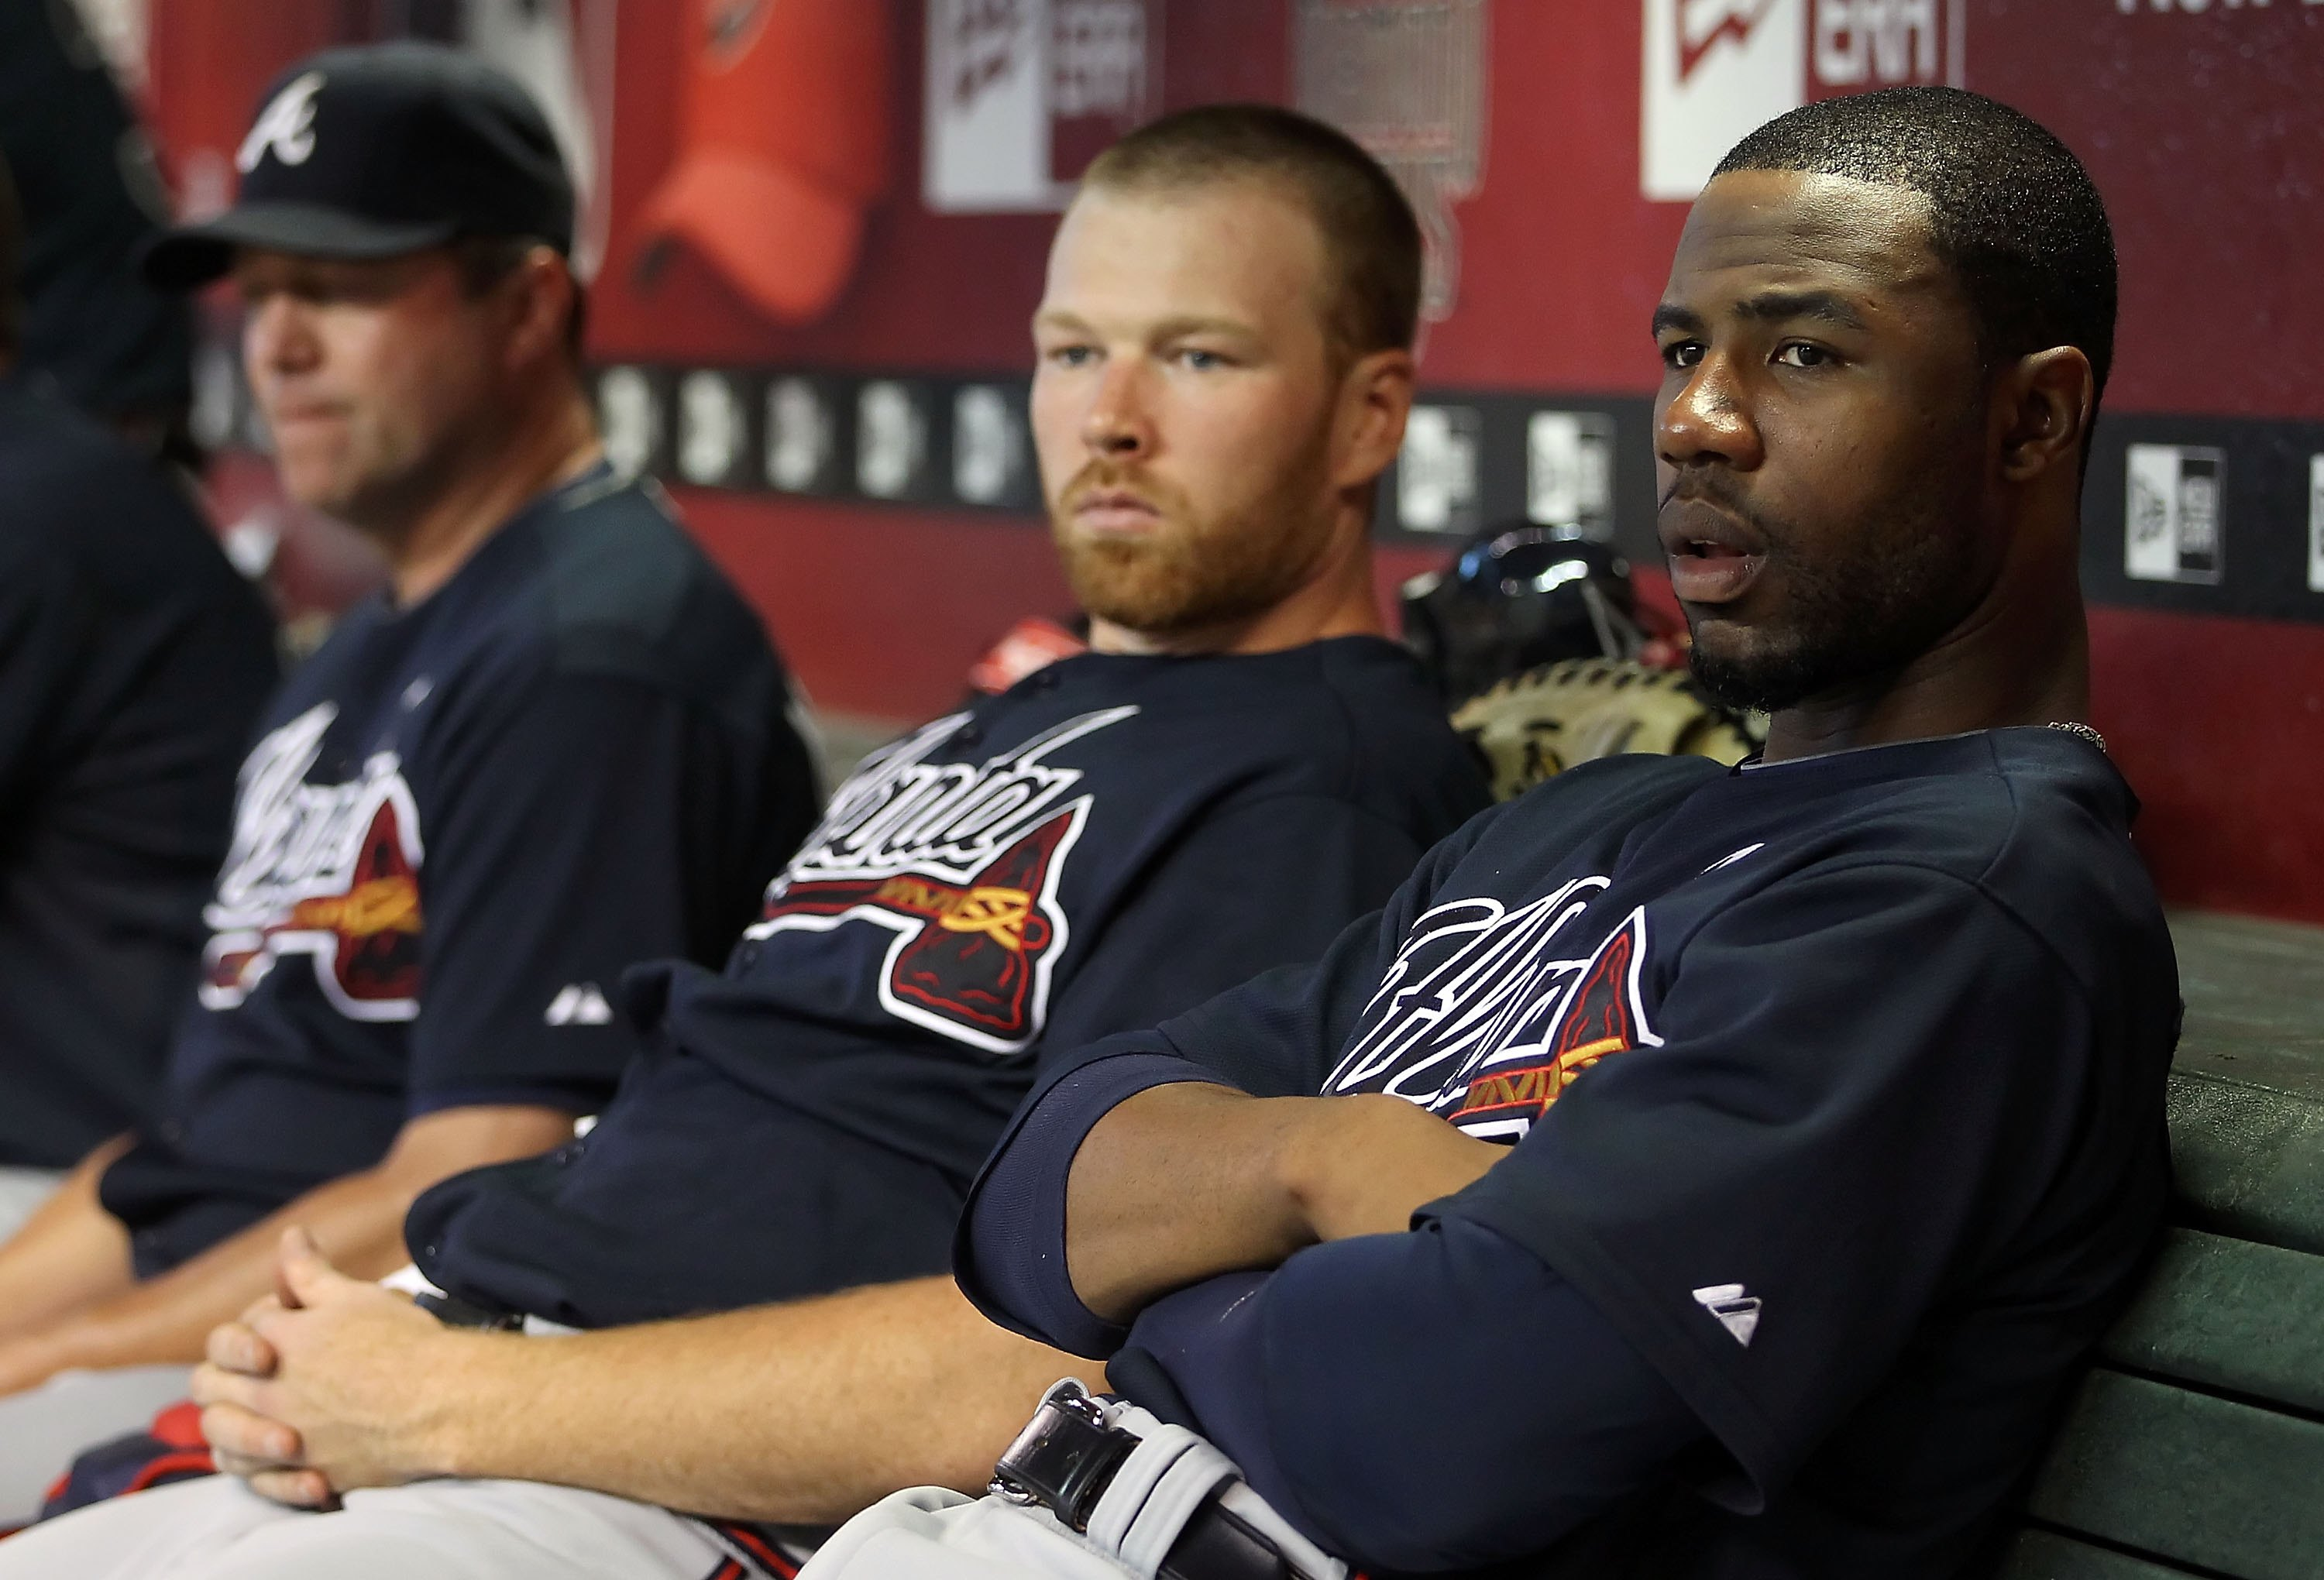 PHOENIX - JUNE 10:  Jason Heyward #22 (R) and pitcher Tommy Hanson #48 of the Atlanta Braves sit in the dugout during the Major League Baseball game against the Arizona Diamondbacksat Chase Field on June 10, 2010 in Phoenix, Arizona.  The Braves defeated